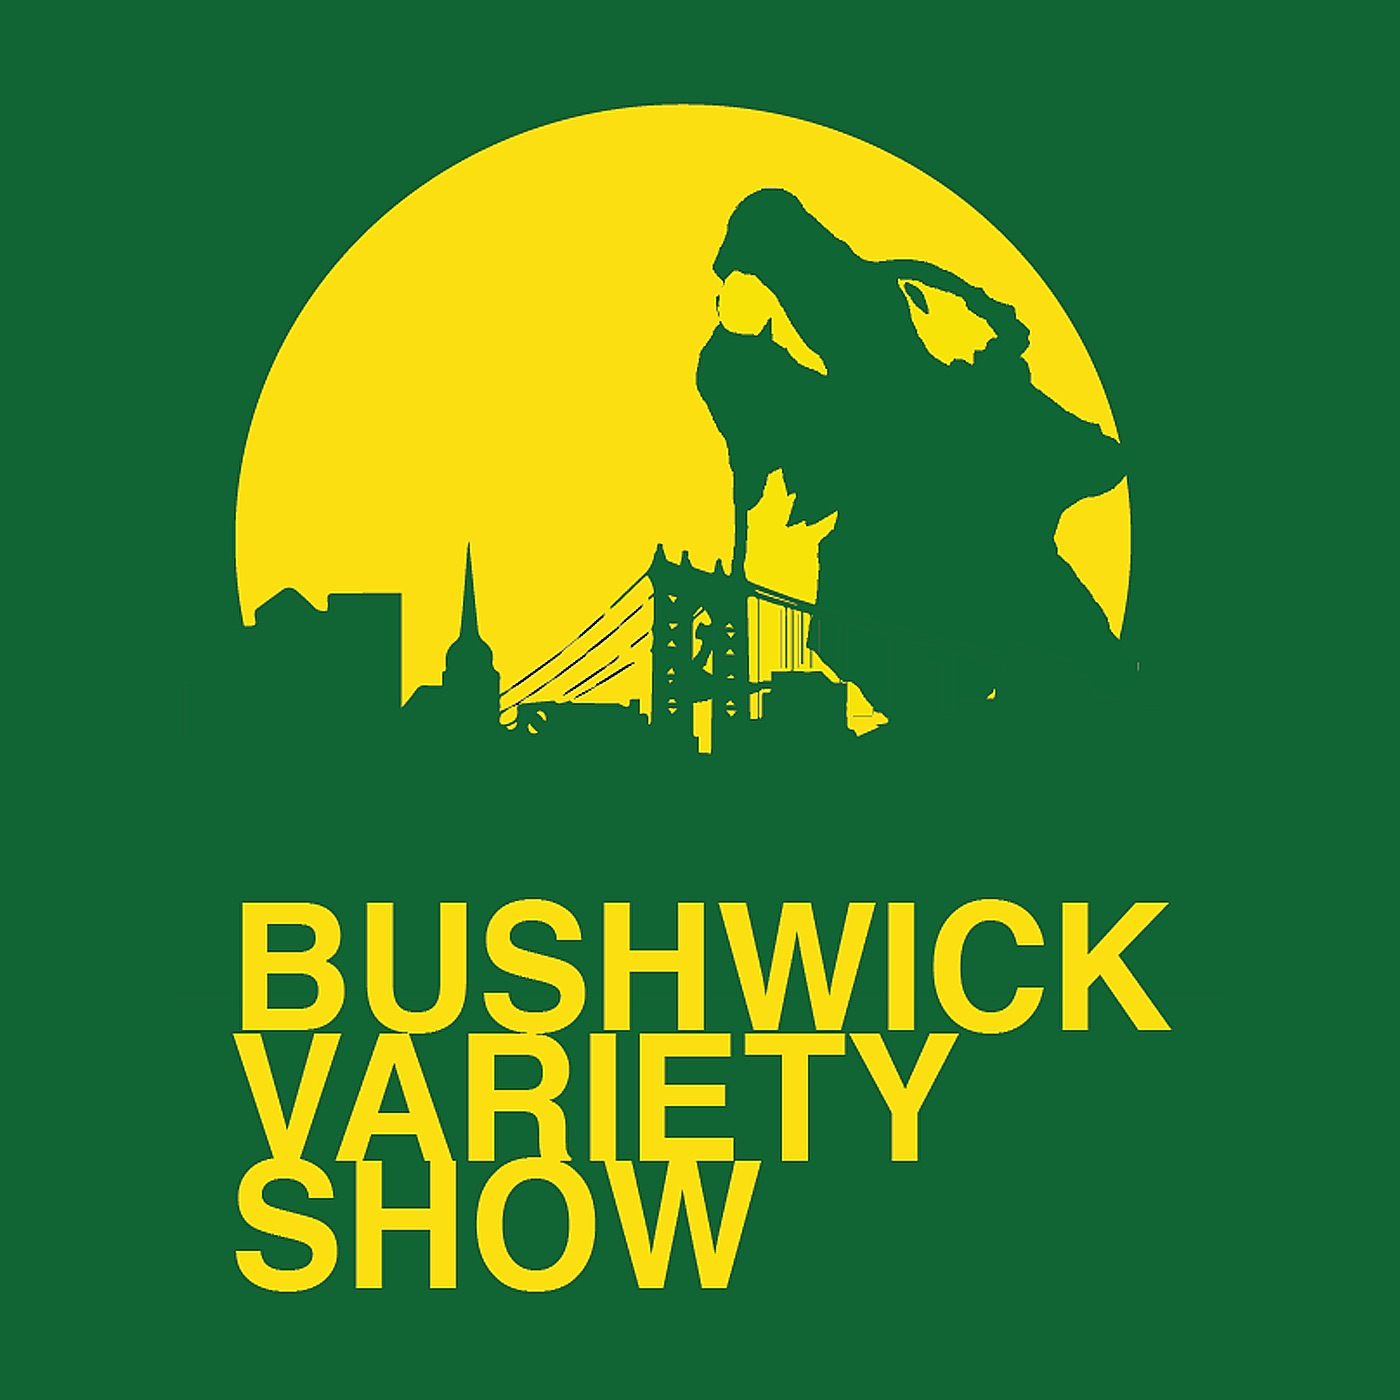 Bushwick Variety Show - Bushwick Variety Show is a podcast available on all major platforms where Alec Stephens III has conversations with artists and innovators about arts & culture. In addition to the Podcast, Alec plans to produce original creative content through this platform, and is always interested in collaborating with other artists as an actor, singer, writer, producer, and is open to other creative roles as well.